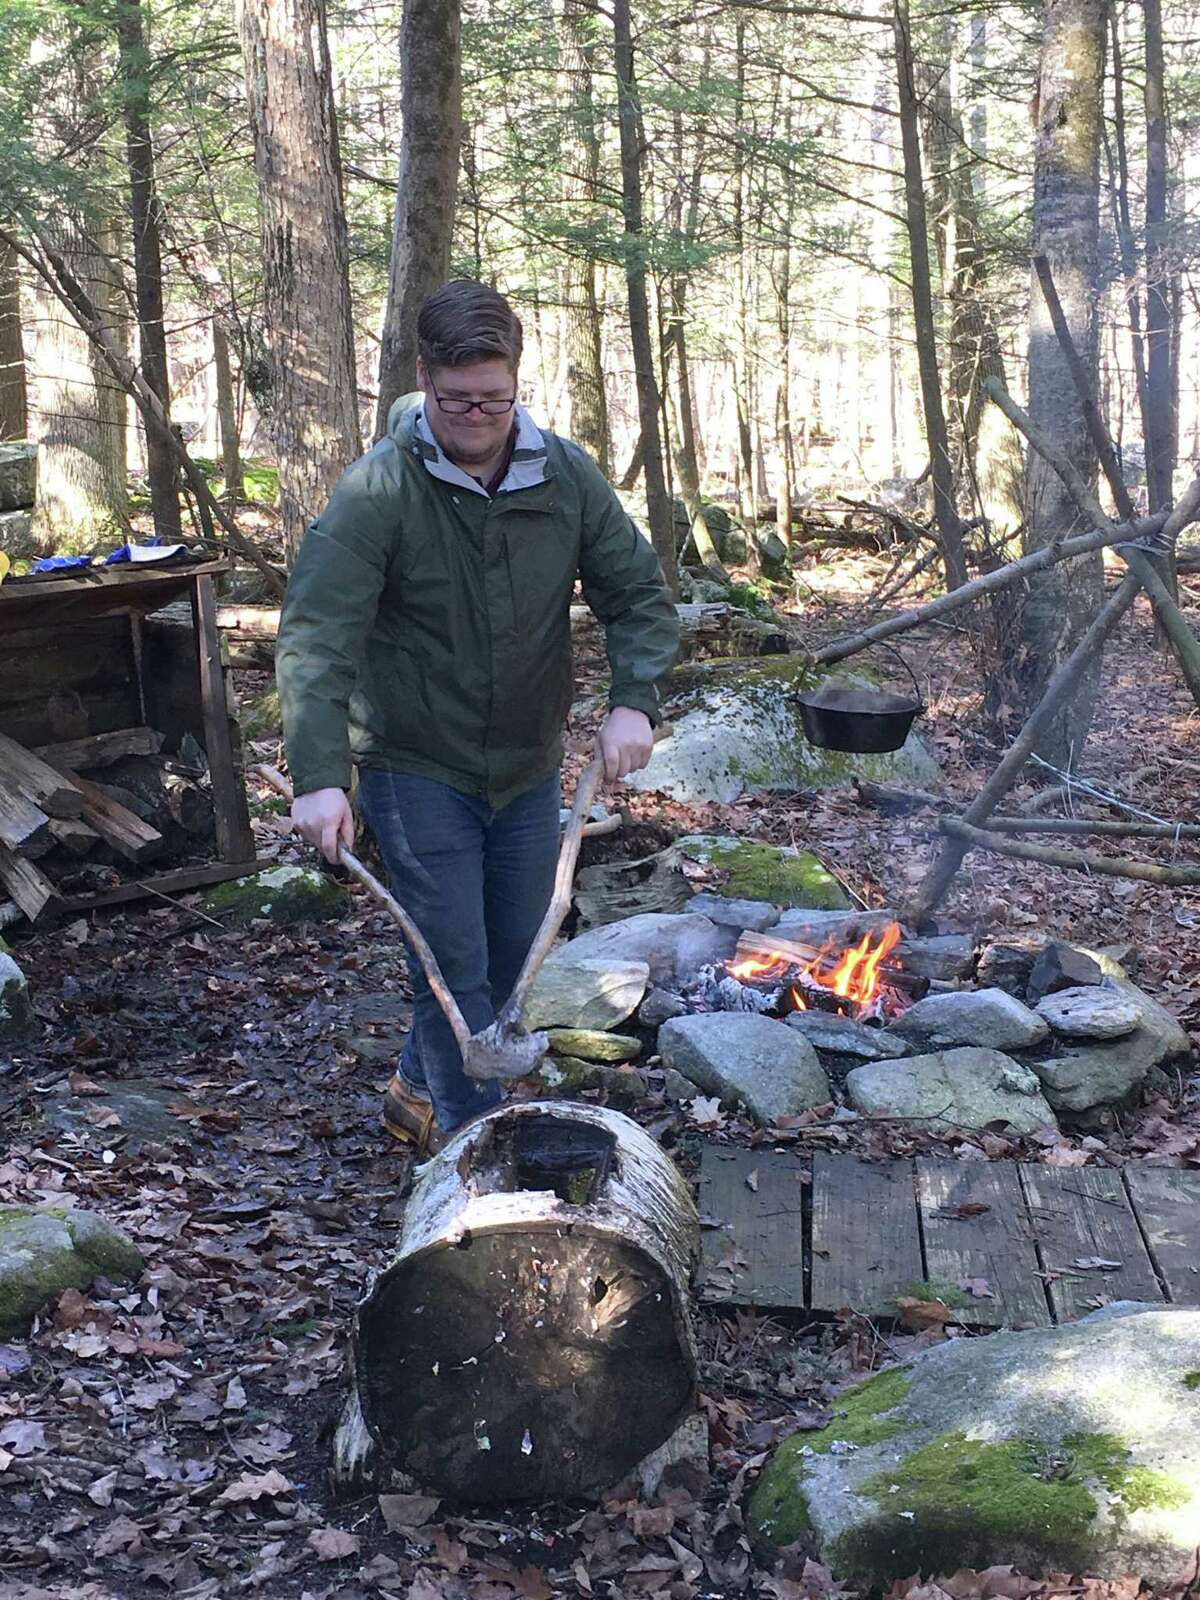 Native Americans would often cook down maple syrup by heating stones and dropping them in a hollowed out log filled with sap.